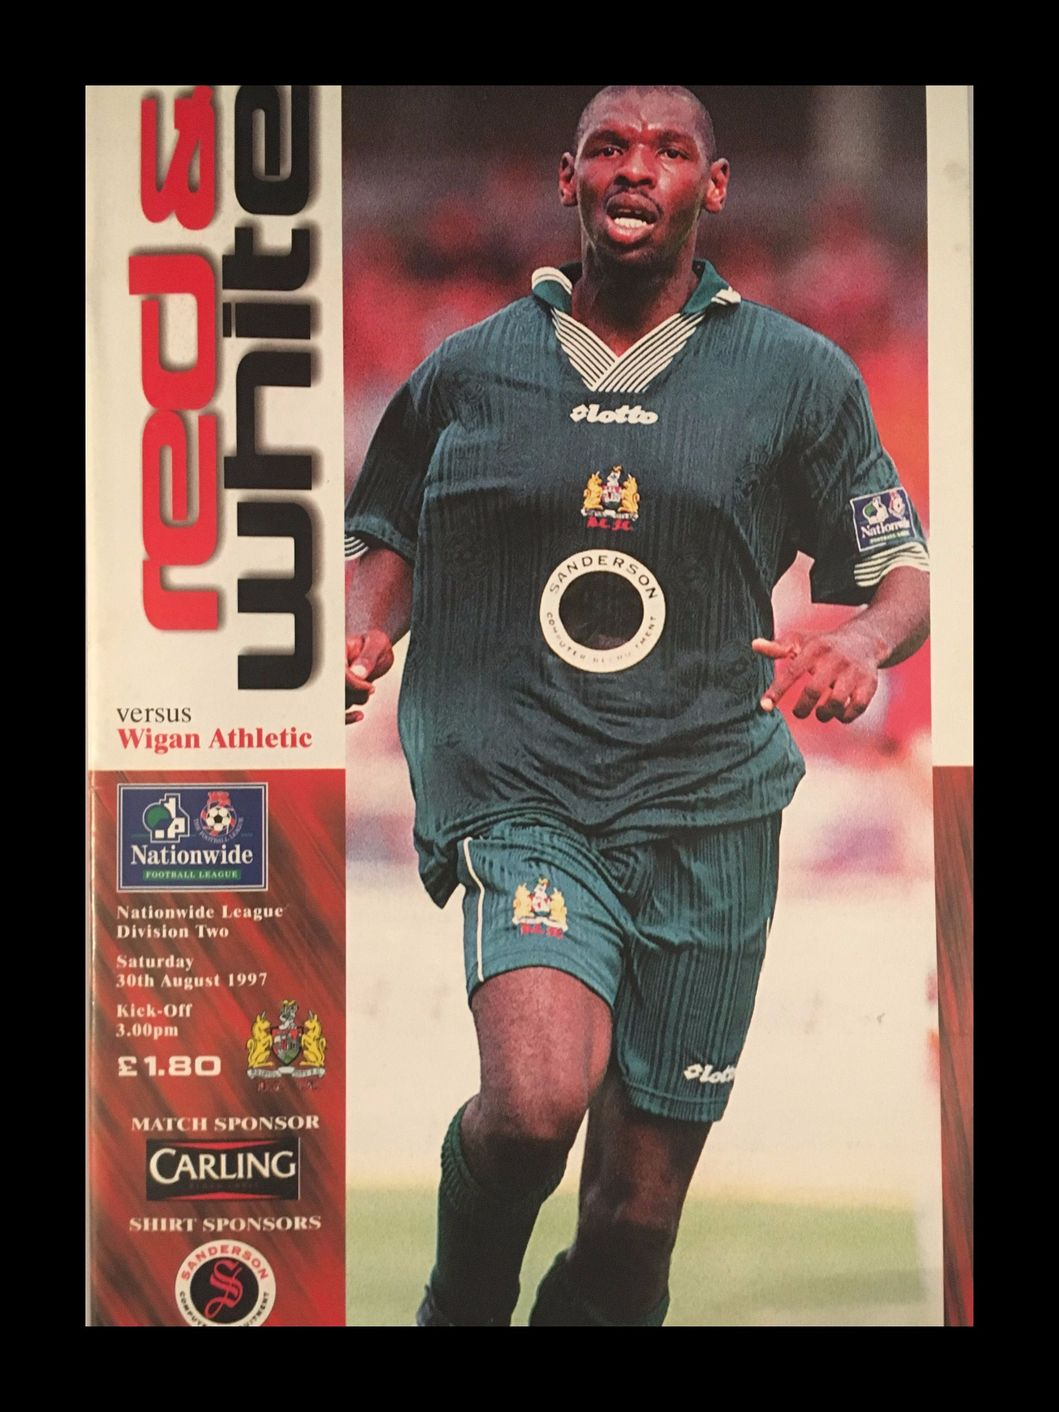 Bristol City v Wigan Athletic 30-08-1997 Programme